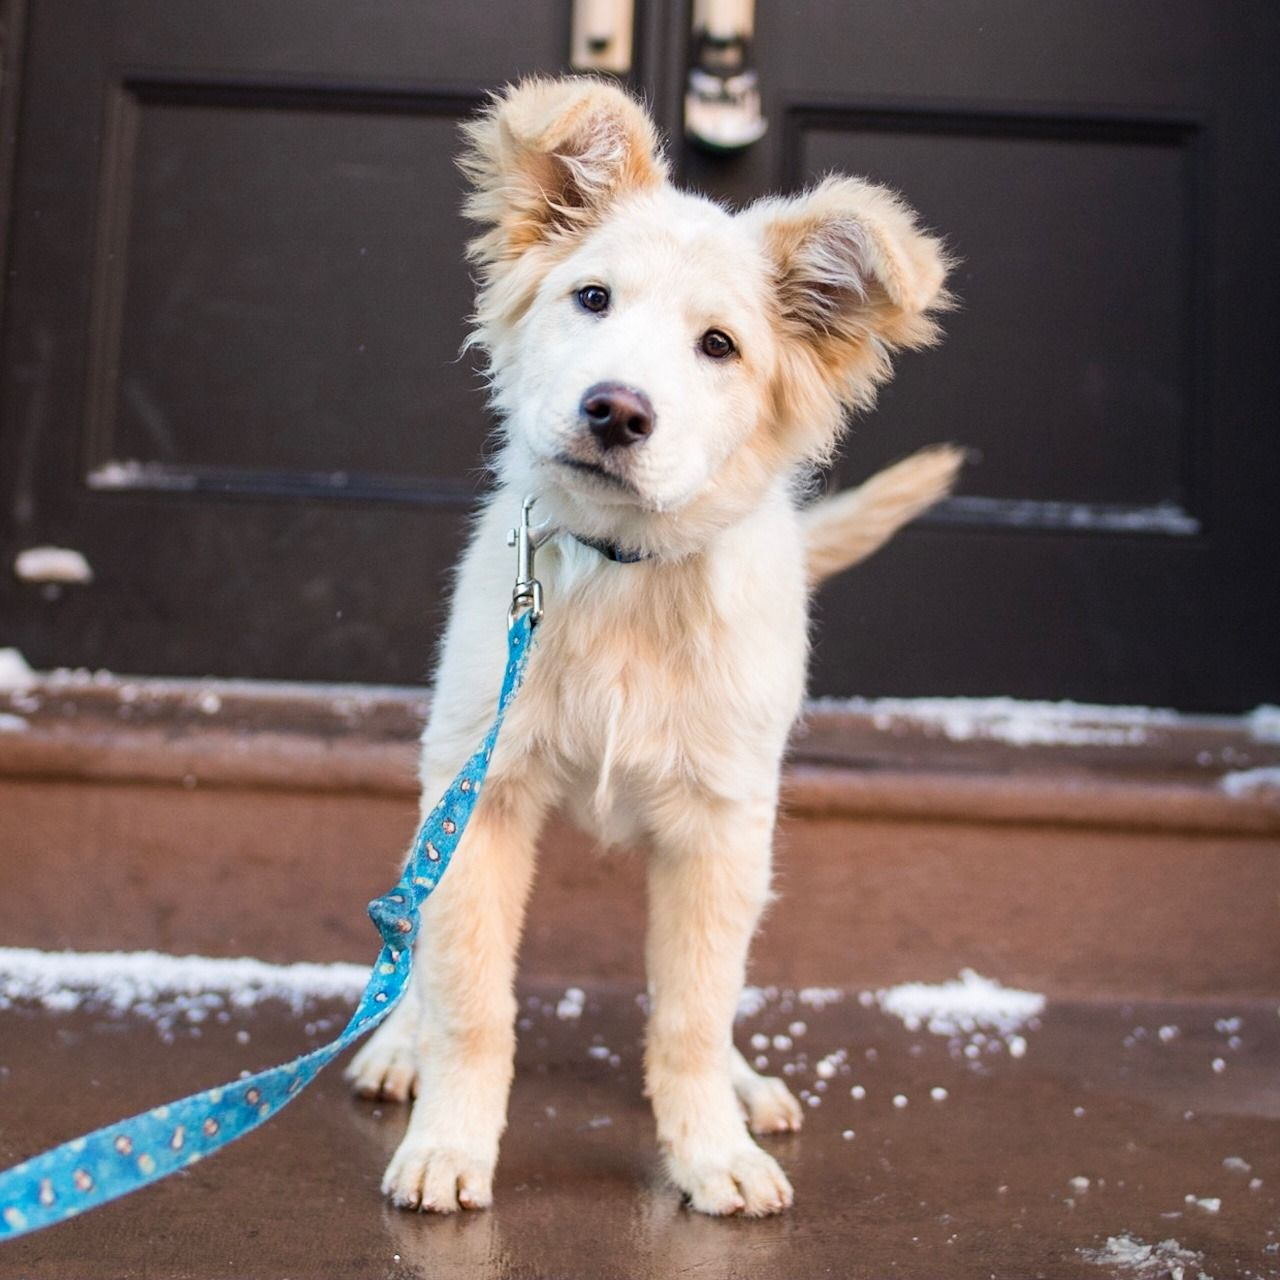 Larry Chow Chow Golden Retriever Mix 4 M O 9th 2nd Ave New